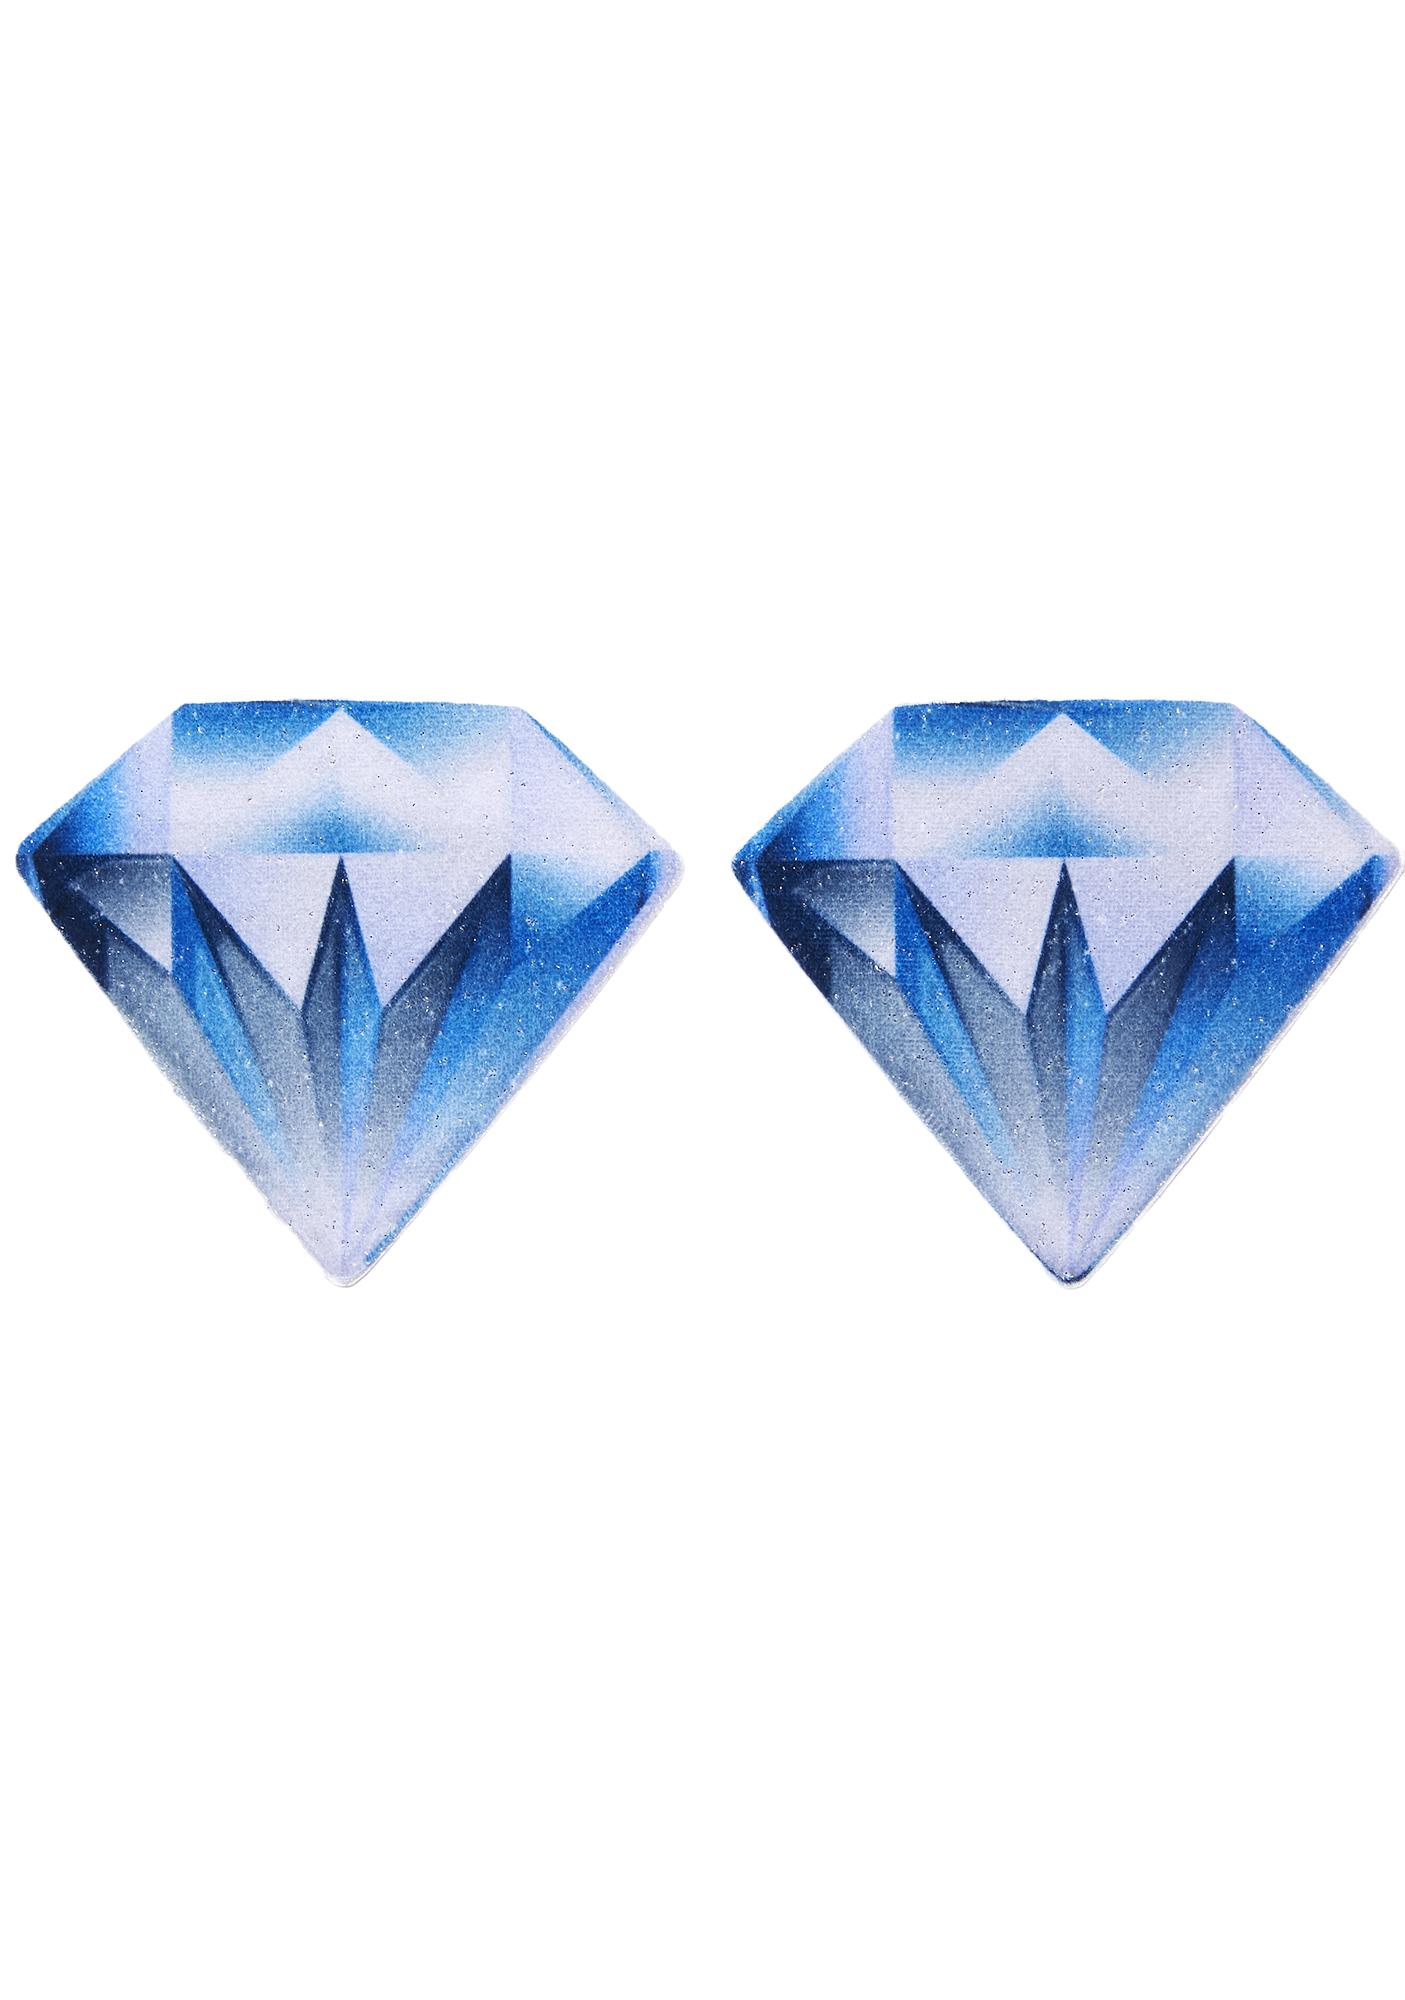 Pastease Blue Diamond Velvet Pasties